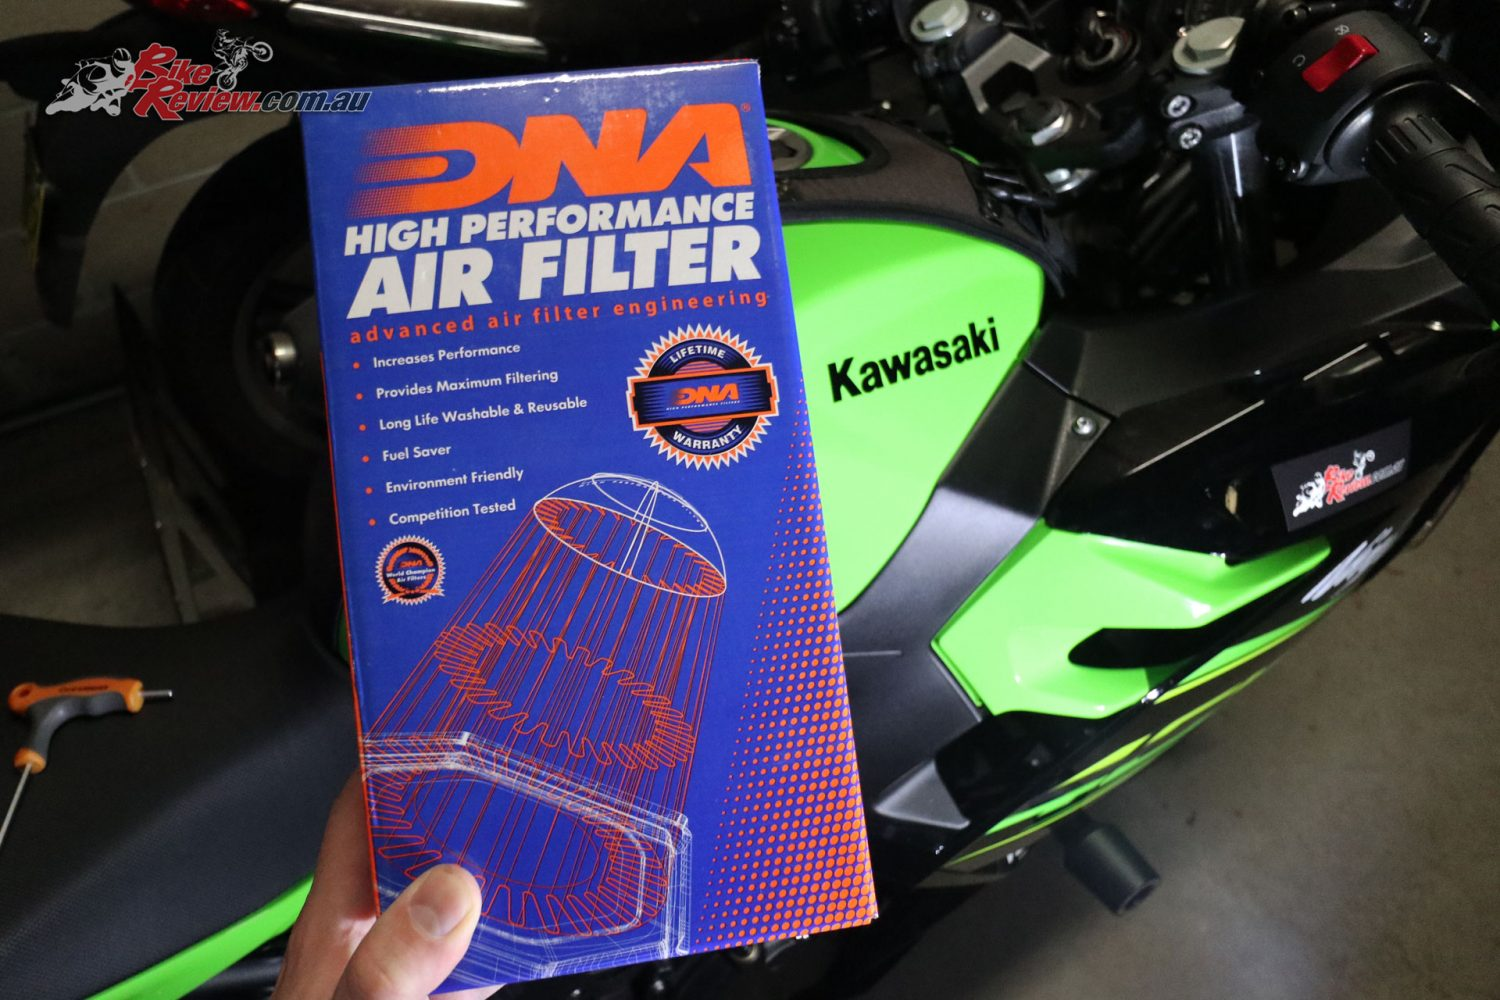 DNA Performance Air Filter for our Project Ninja 400